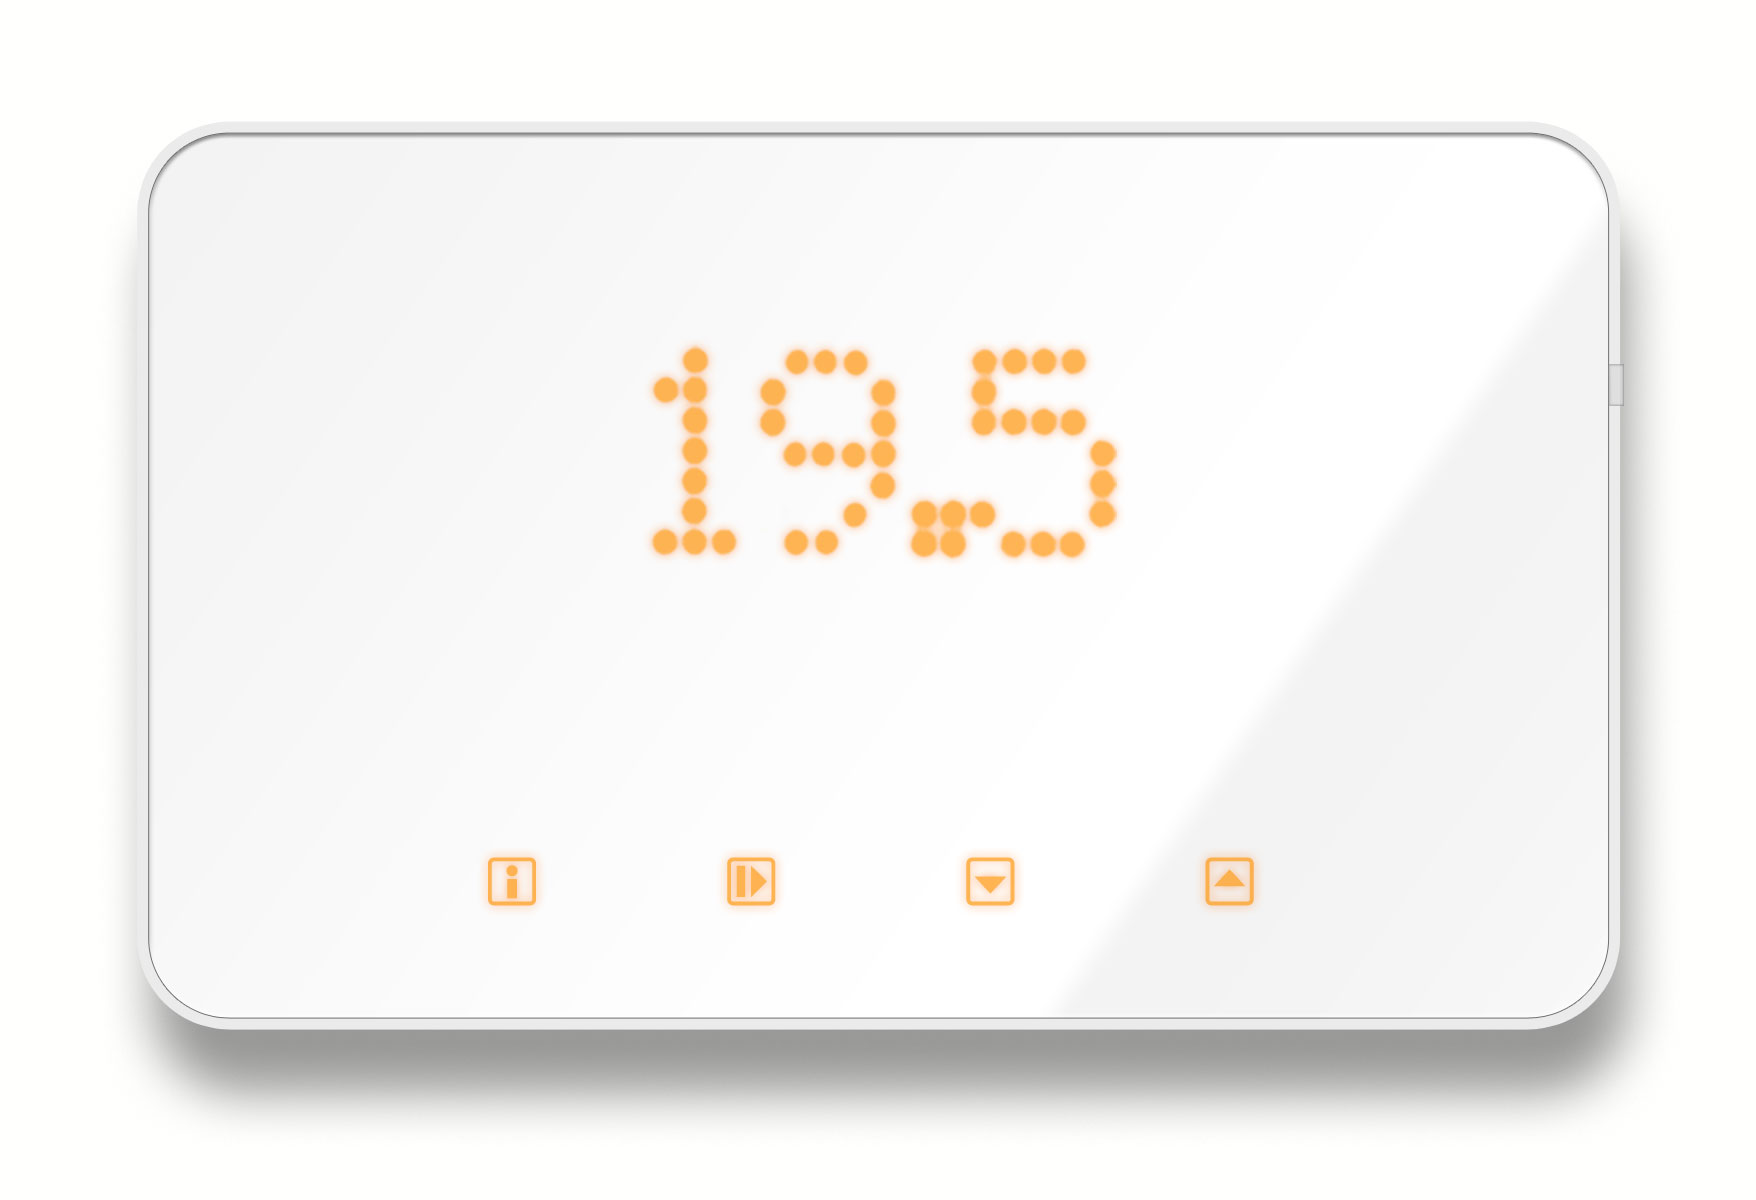 Internet Thermostat Iphone